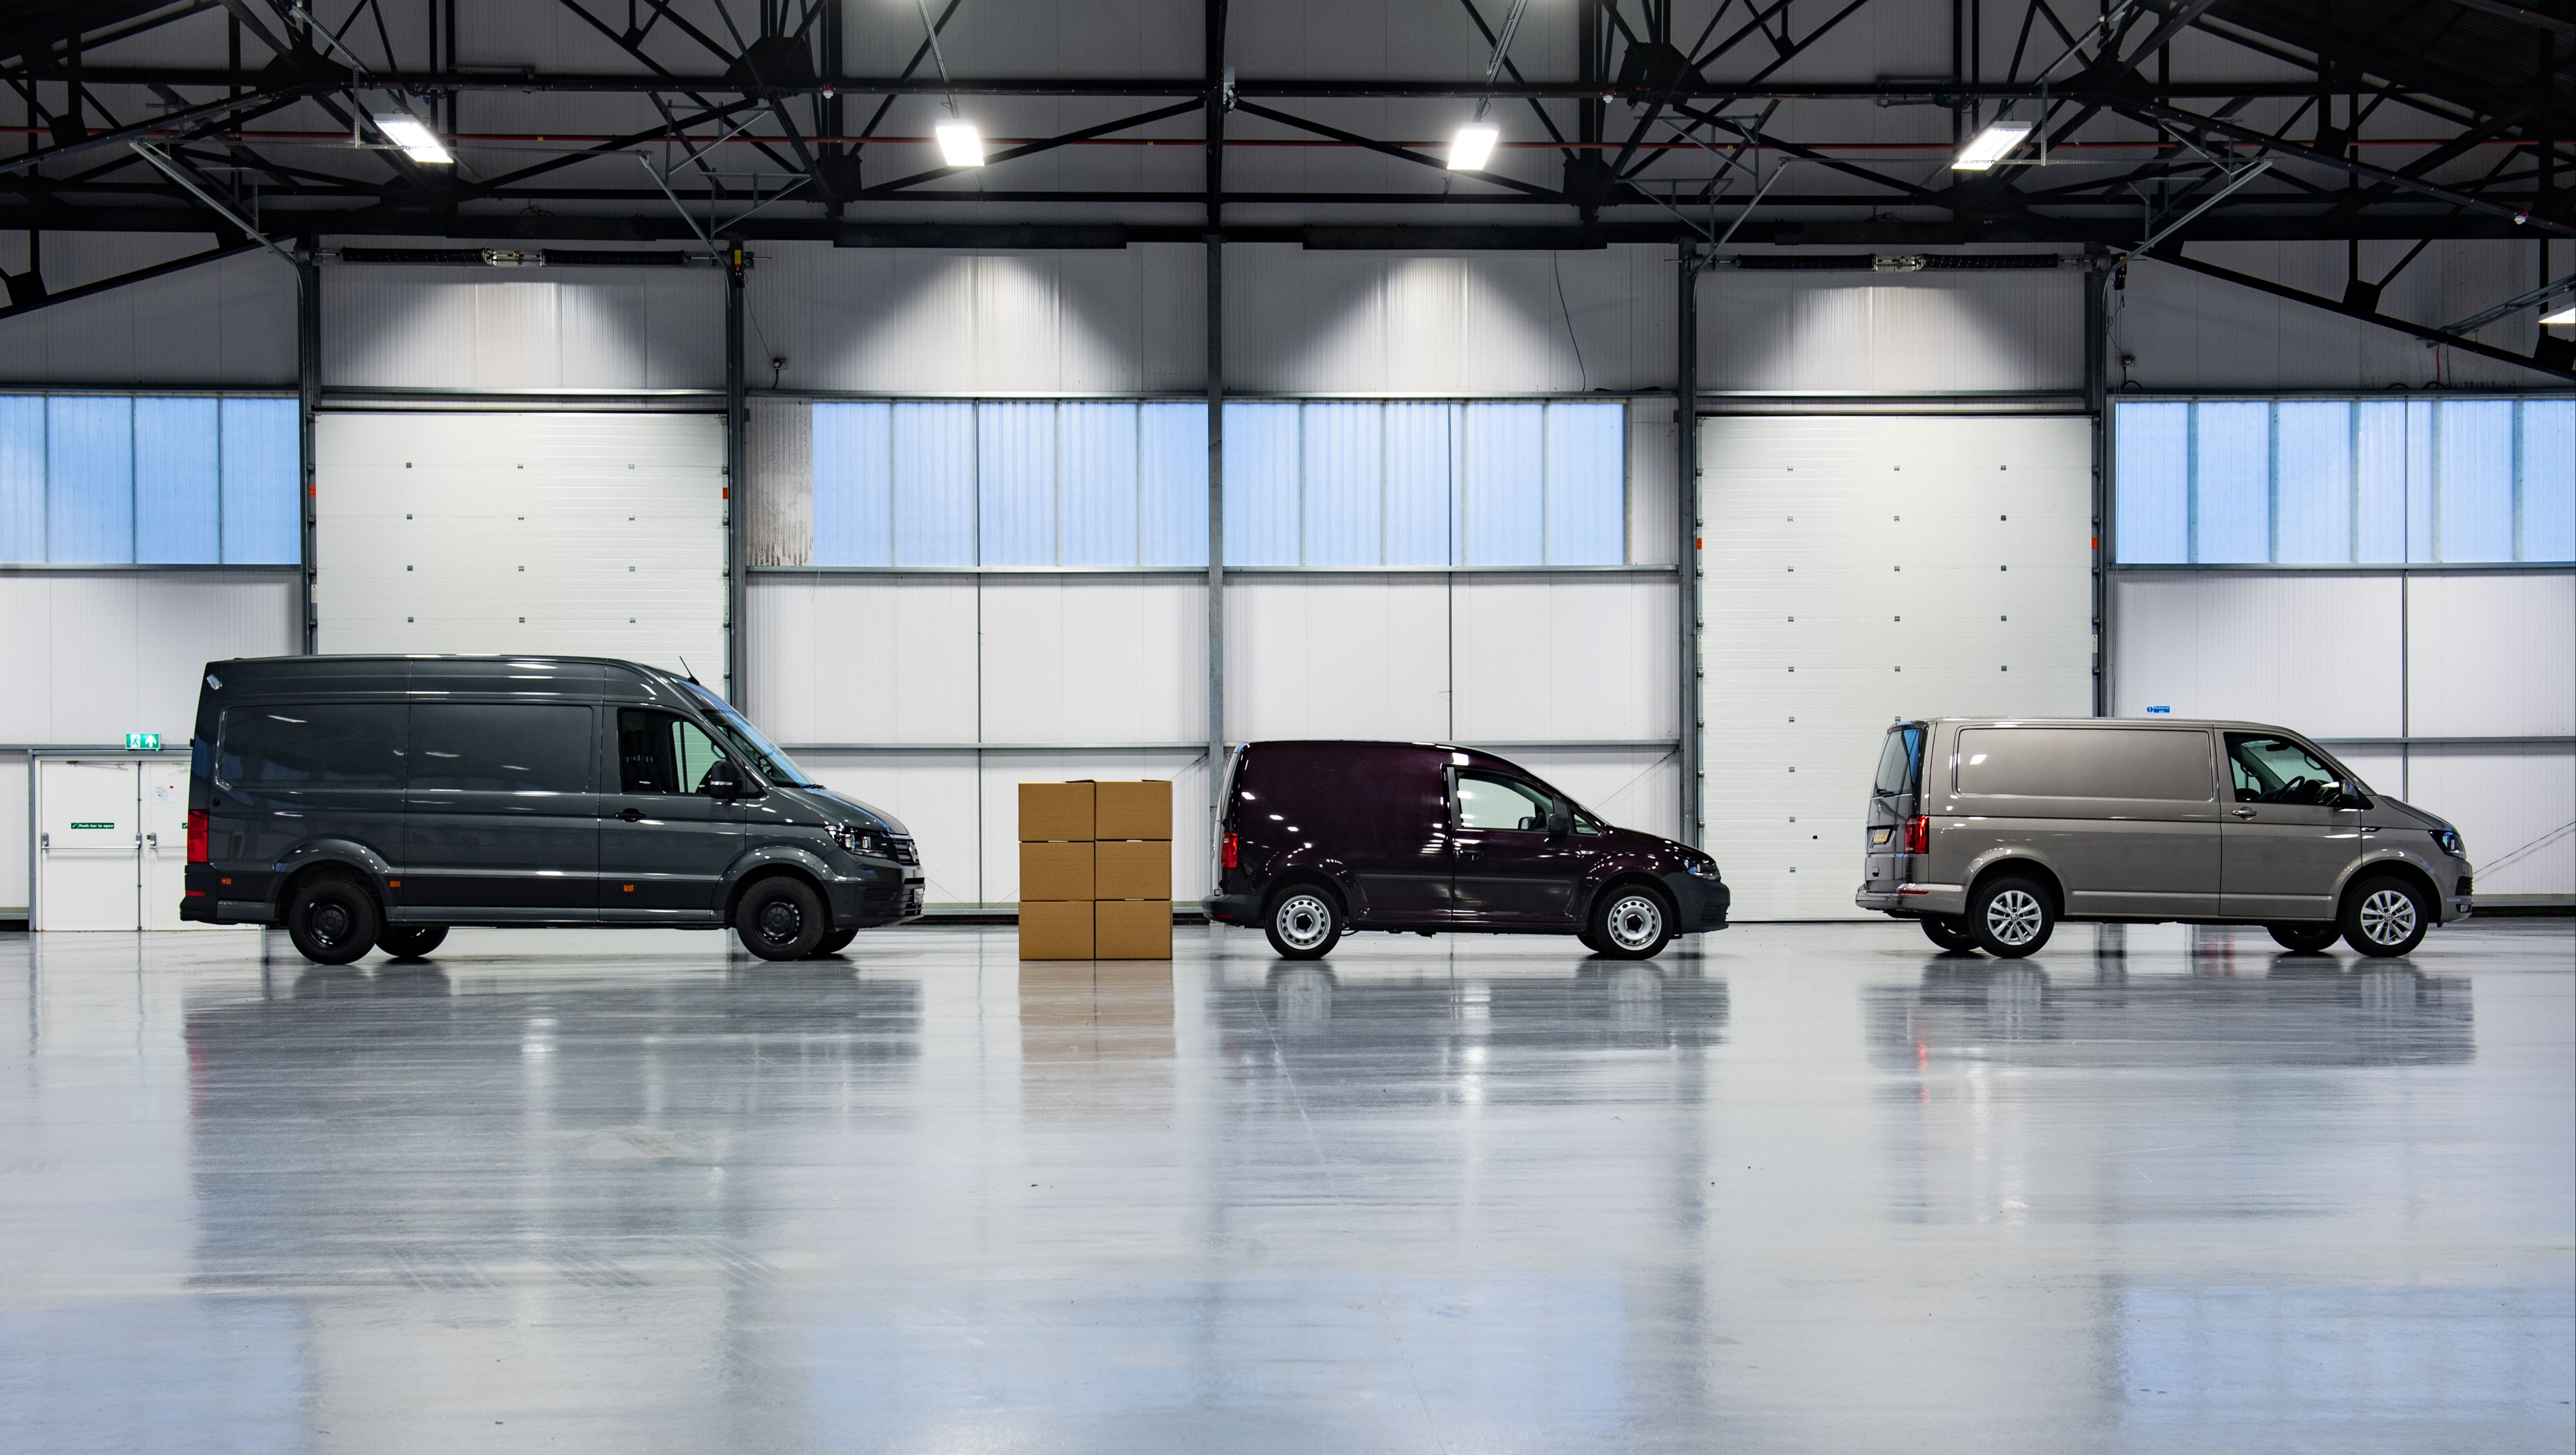 side view of VW Commercial vehicles parking